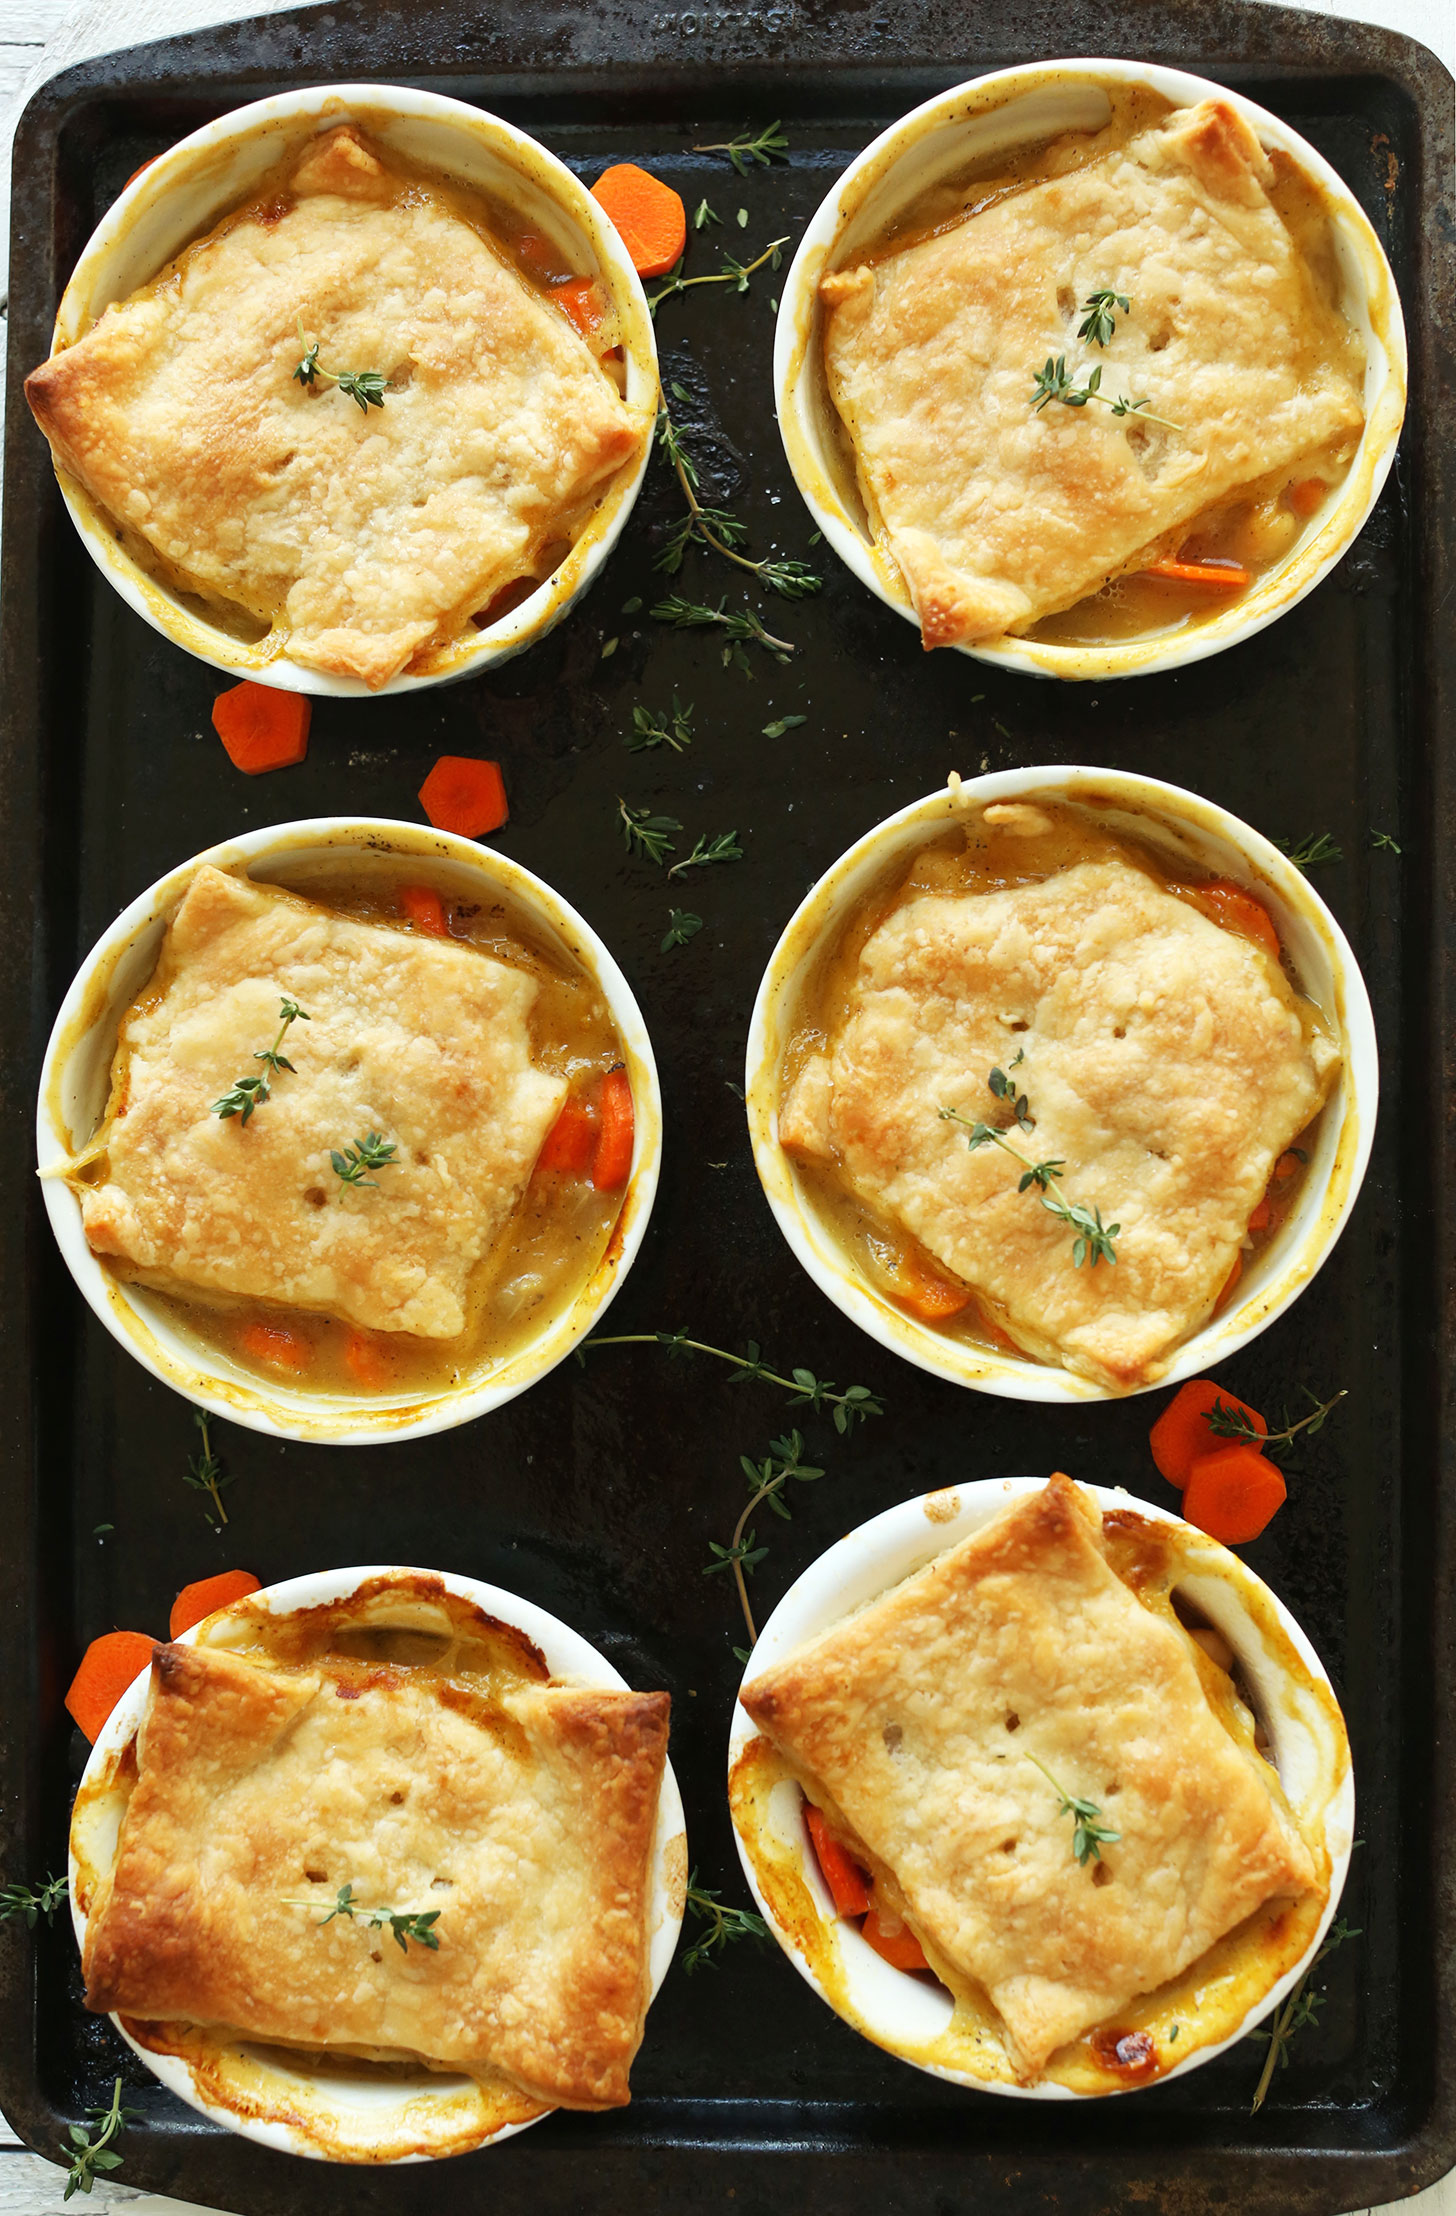 Thyme white bean pot pies minimalist baker recipes baking sheet with six ramekins filled with white bean thyme vegan pot pies forumfinder Choice Image